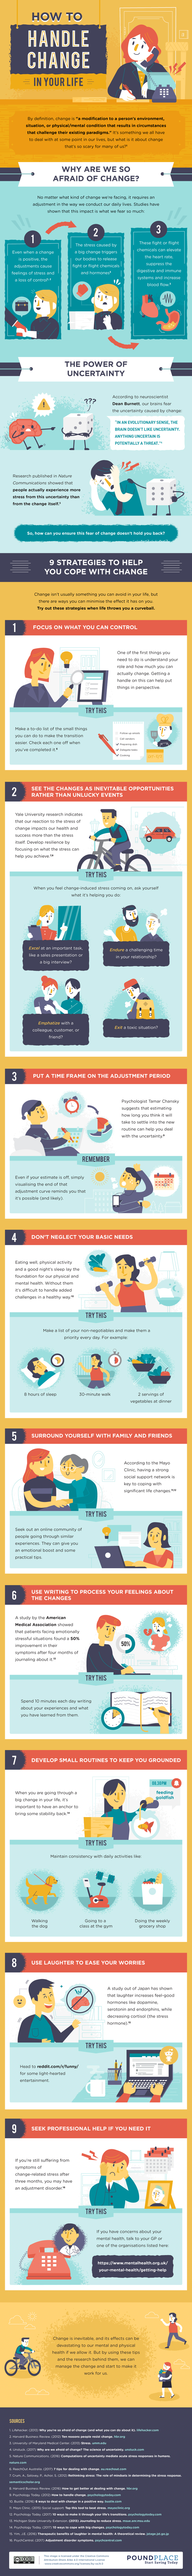 [Infographic] How To Handle Change In Your Life